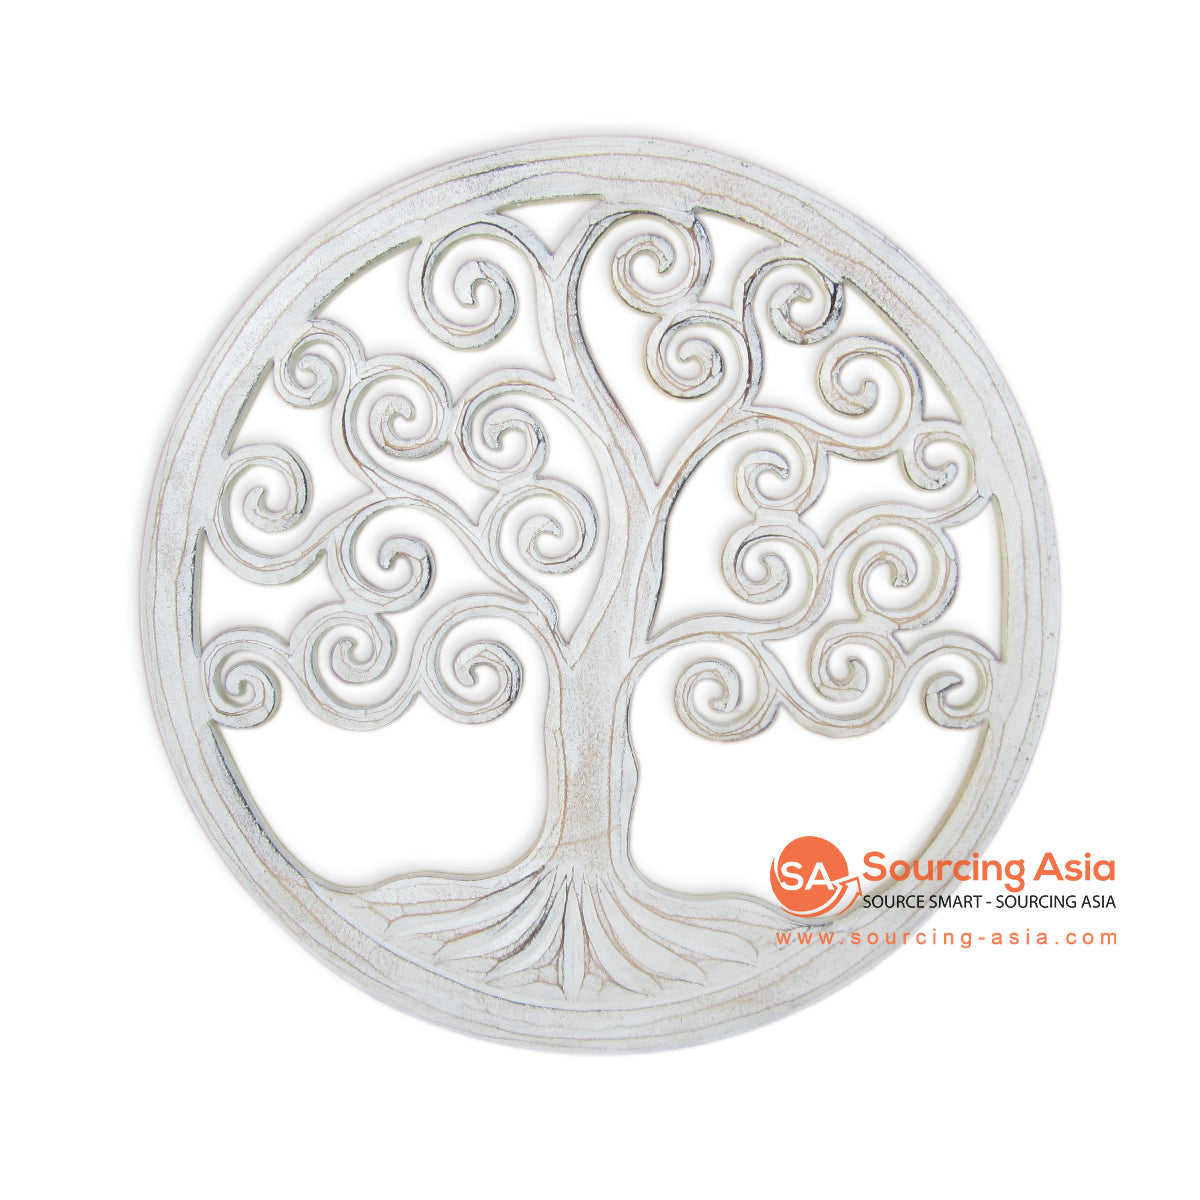 LUH013-40 TREE OF LIFE WALL DECOR